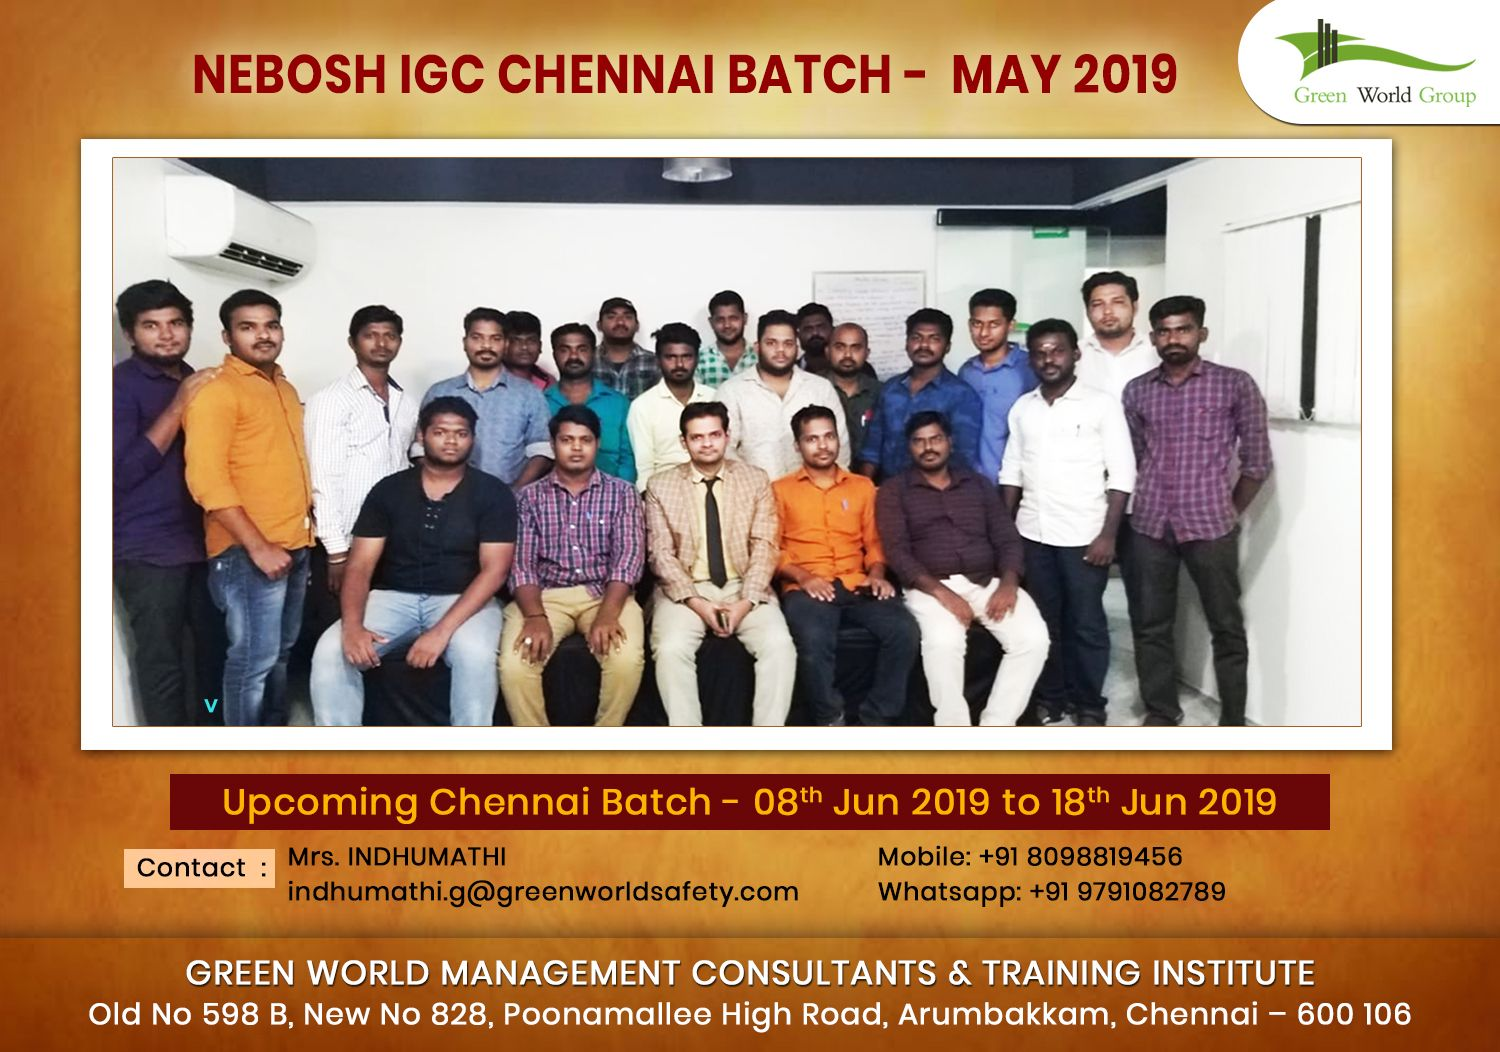 Our students have completed #NEBOSHIGC Training program in #Chennai